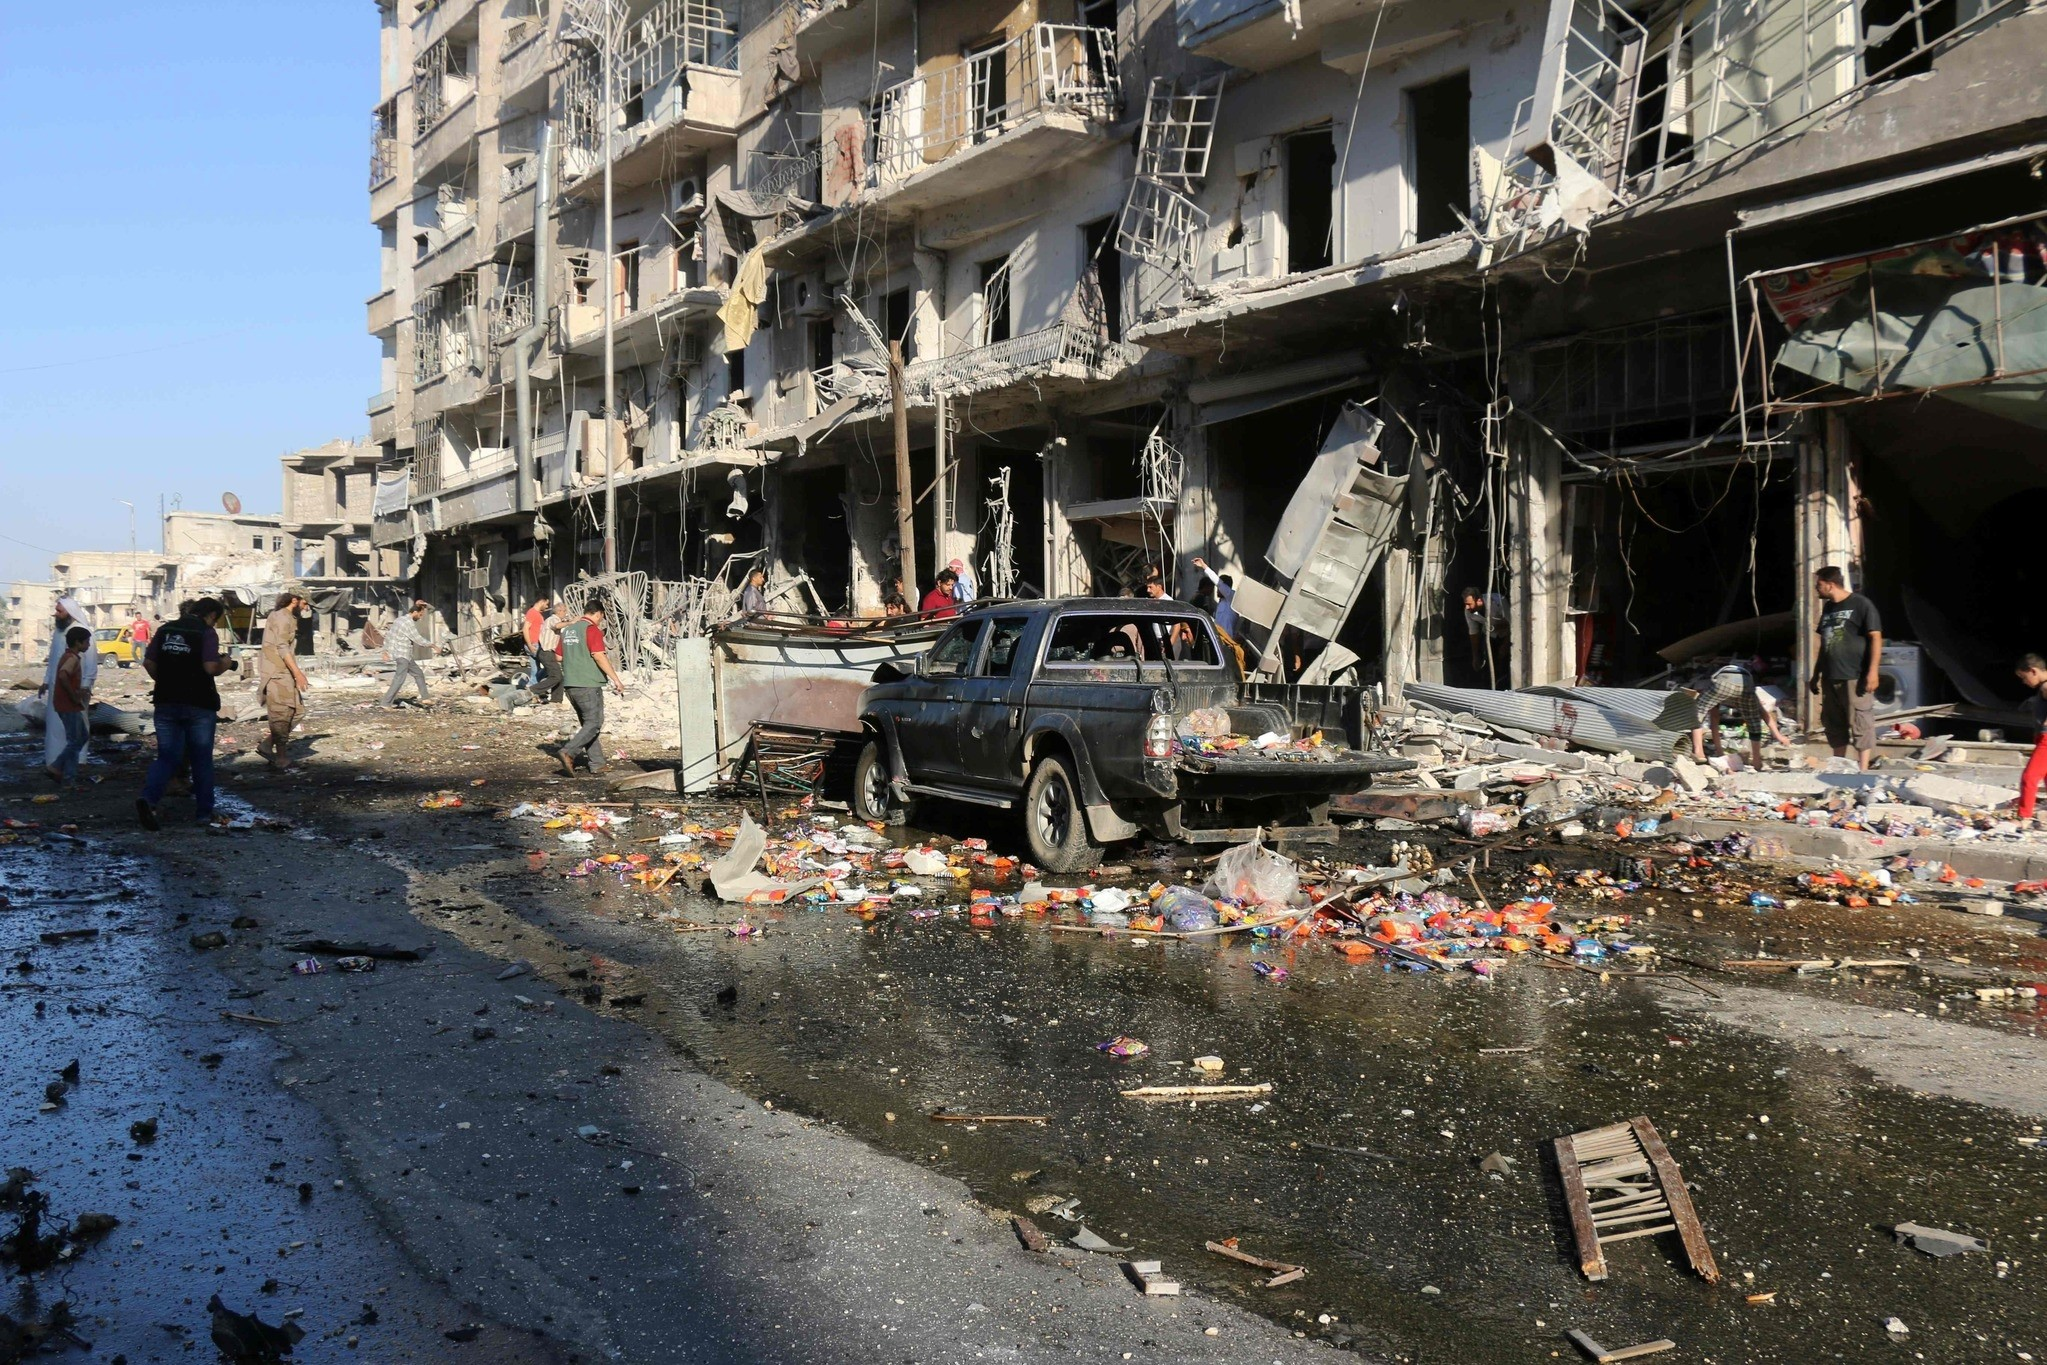 Syrians inspect the damage on a street following a reported airstrike at a market in the rebel-held district of Tariq al-Bab, in the northern city of Aleppo on July 1, 2016. (AFP Photo)